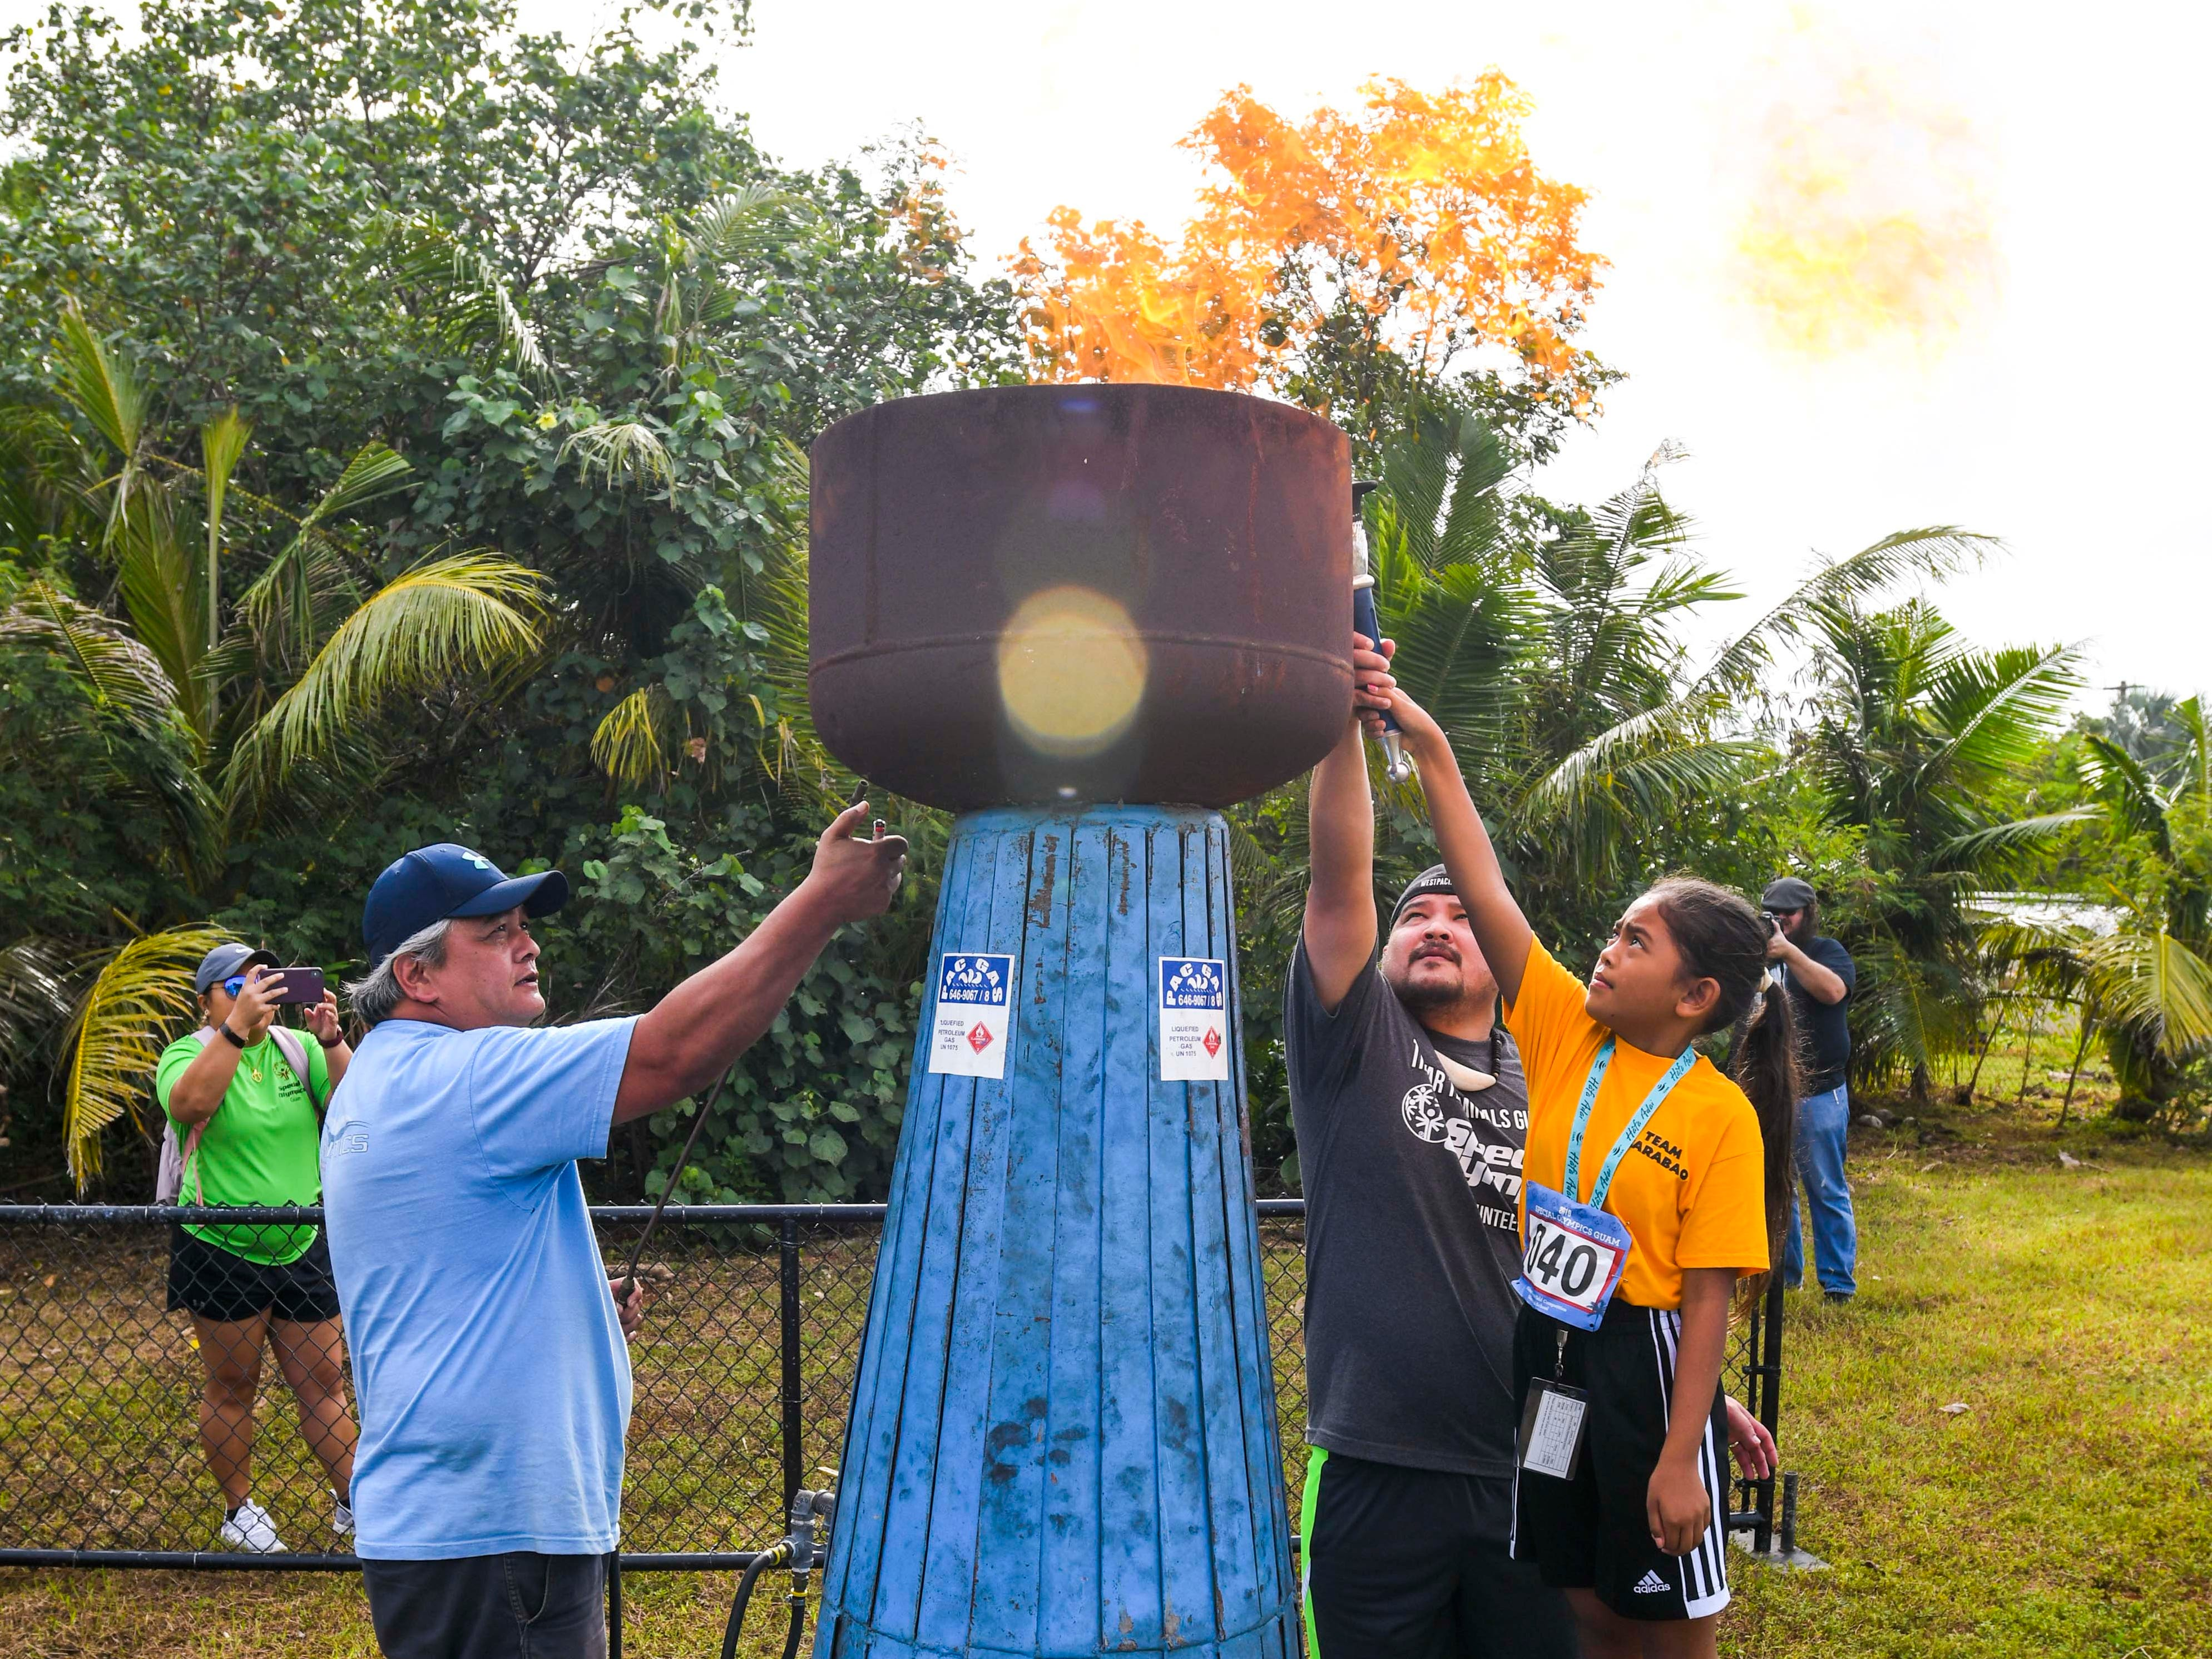 Special Olympian Zoey Lucero, right, ignites the main torch during the opening ceremony at the 43rd Special Olympics Guam Track & Field competition at Okkodo High School in Dededo on Saturday, March 16, 2019.